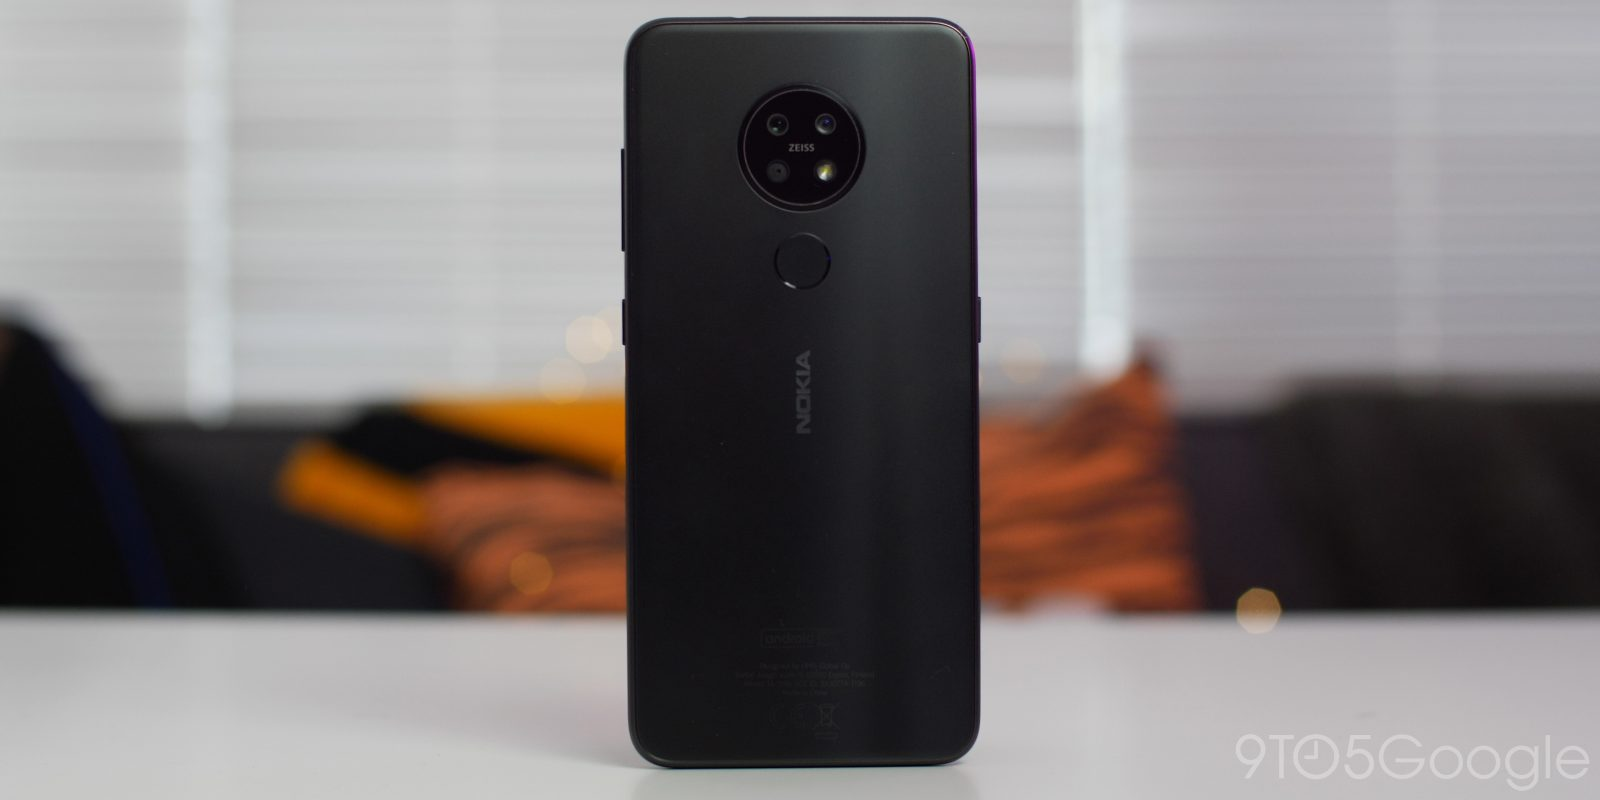 Nokia 7.2 review: The Google Pixel 3a now has some actual competition [Video]